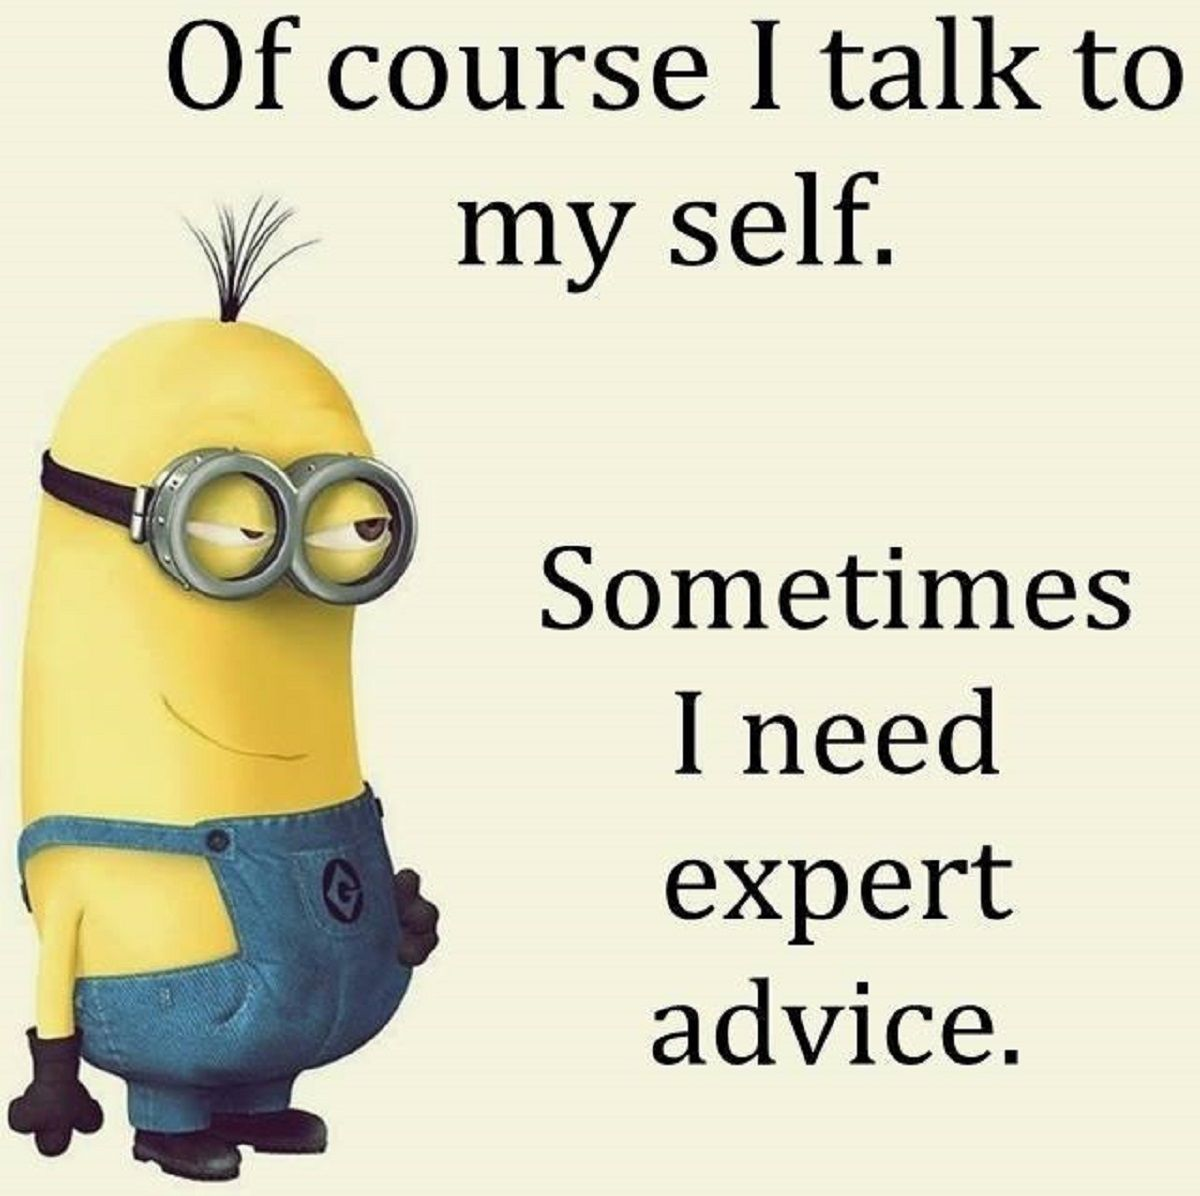 Funniest Minion Quotes Of The Week. Fun Sayings And QuotesFunny ...